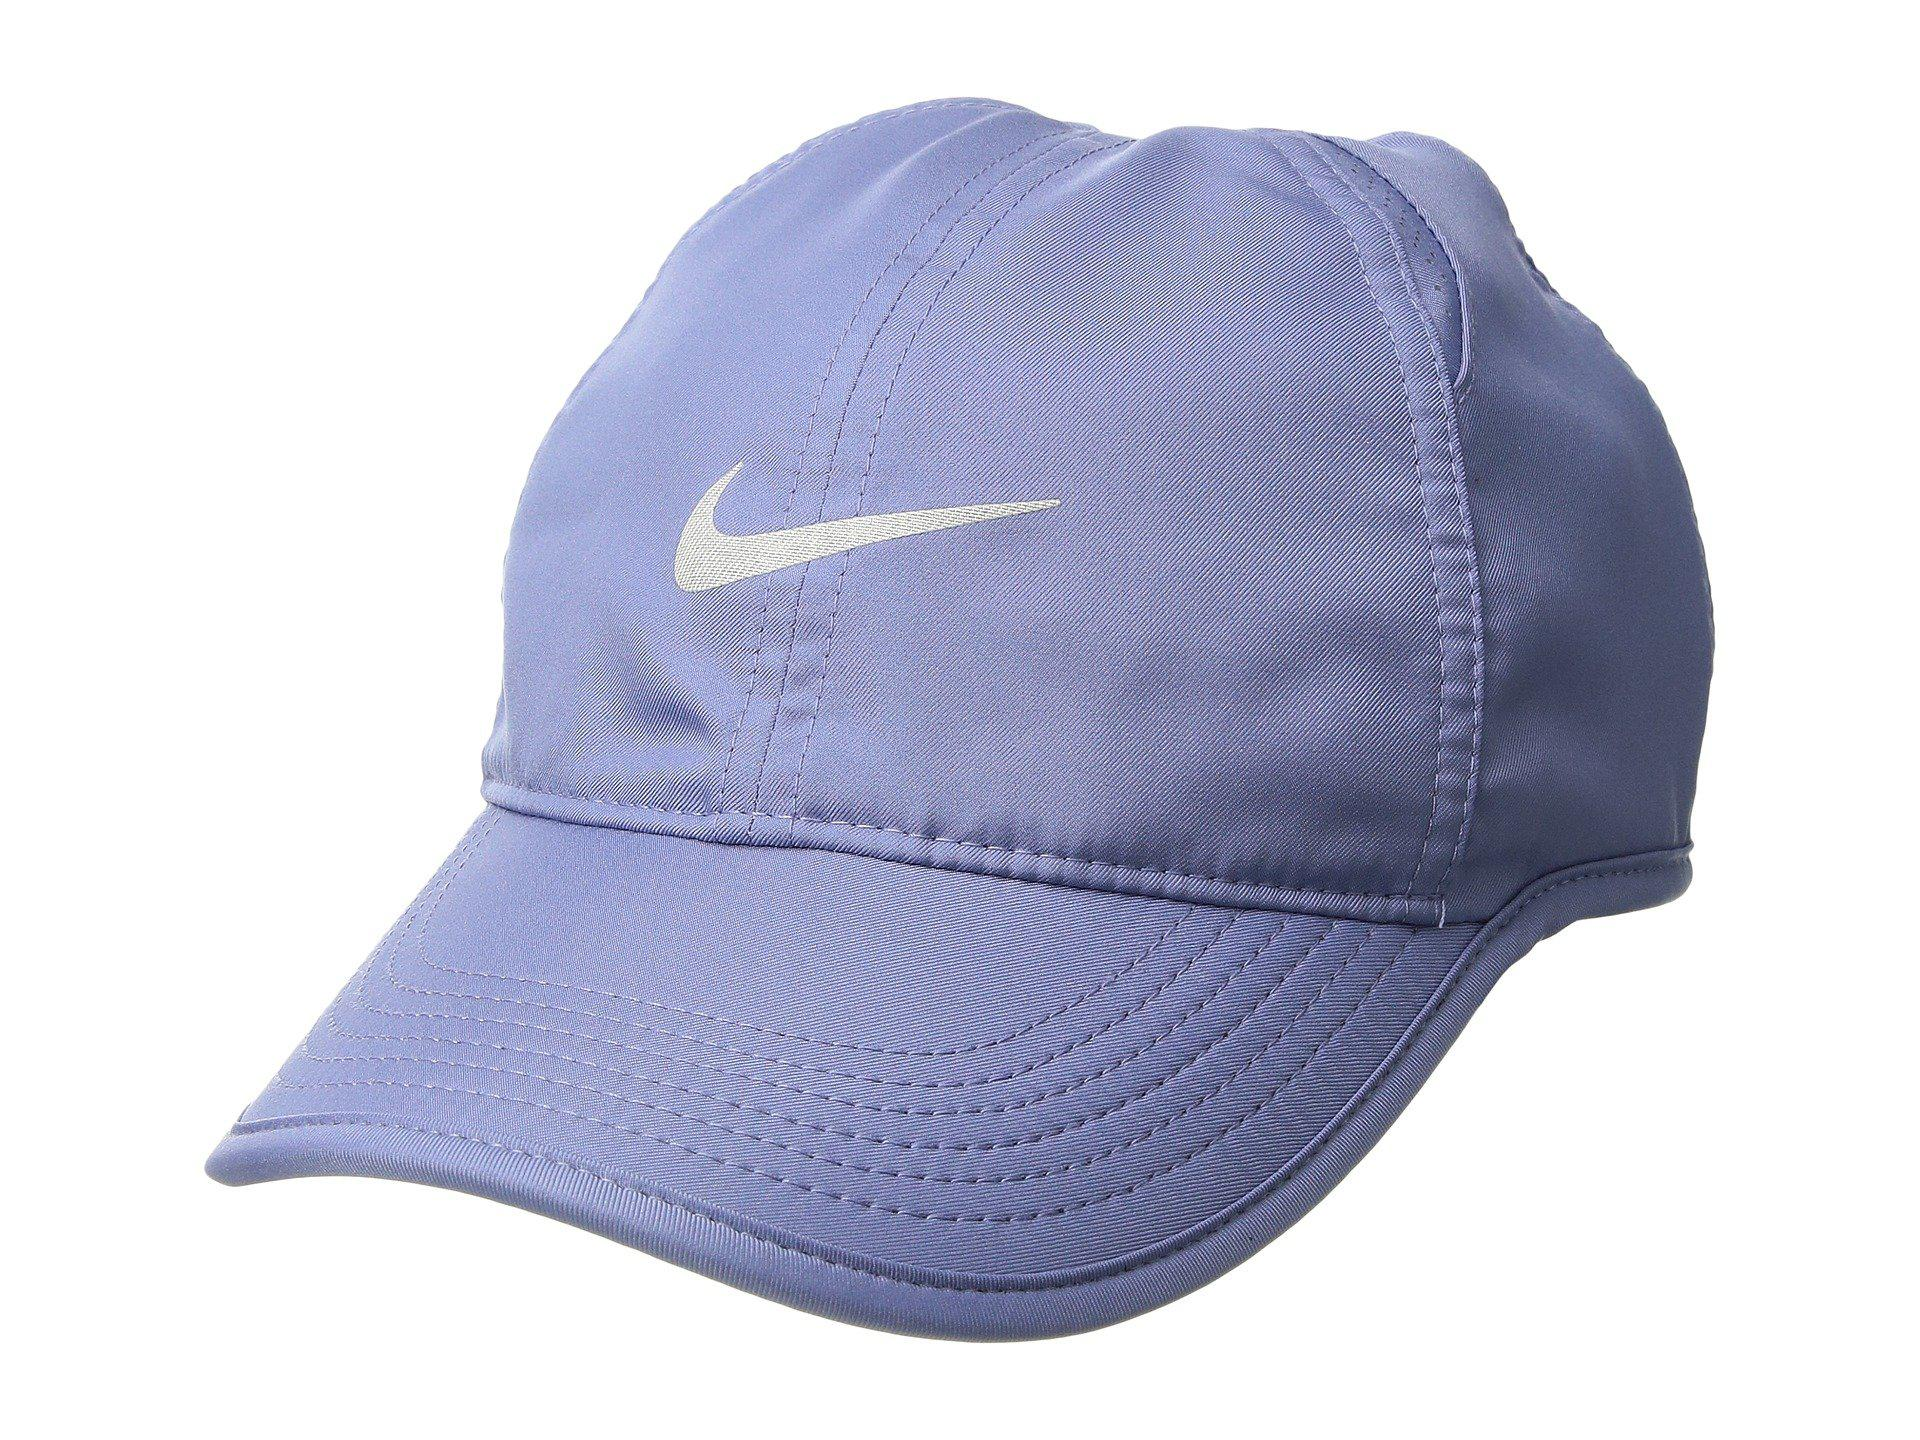 cheap for discount 0cda2 32816 ... australia lyst nike featherlight cap womens in purple 3bea0 47ab1